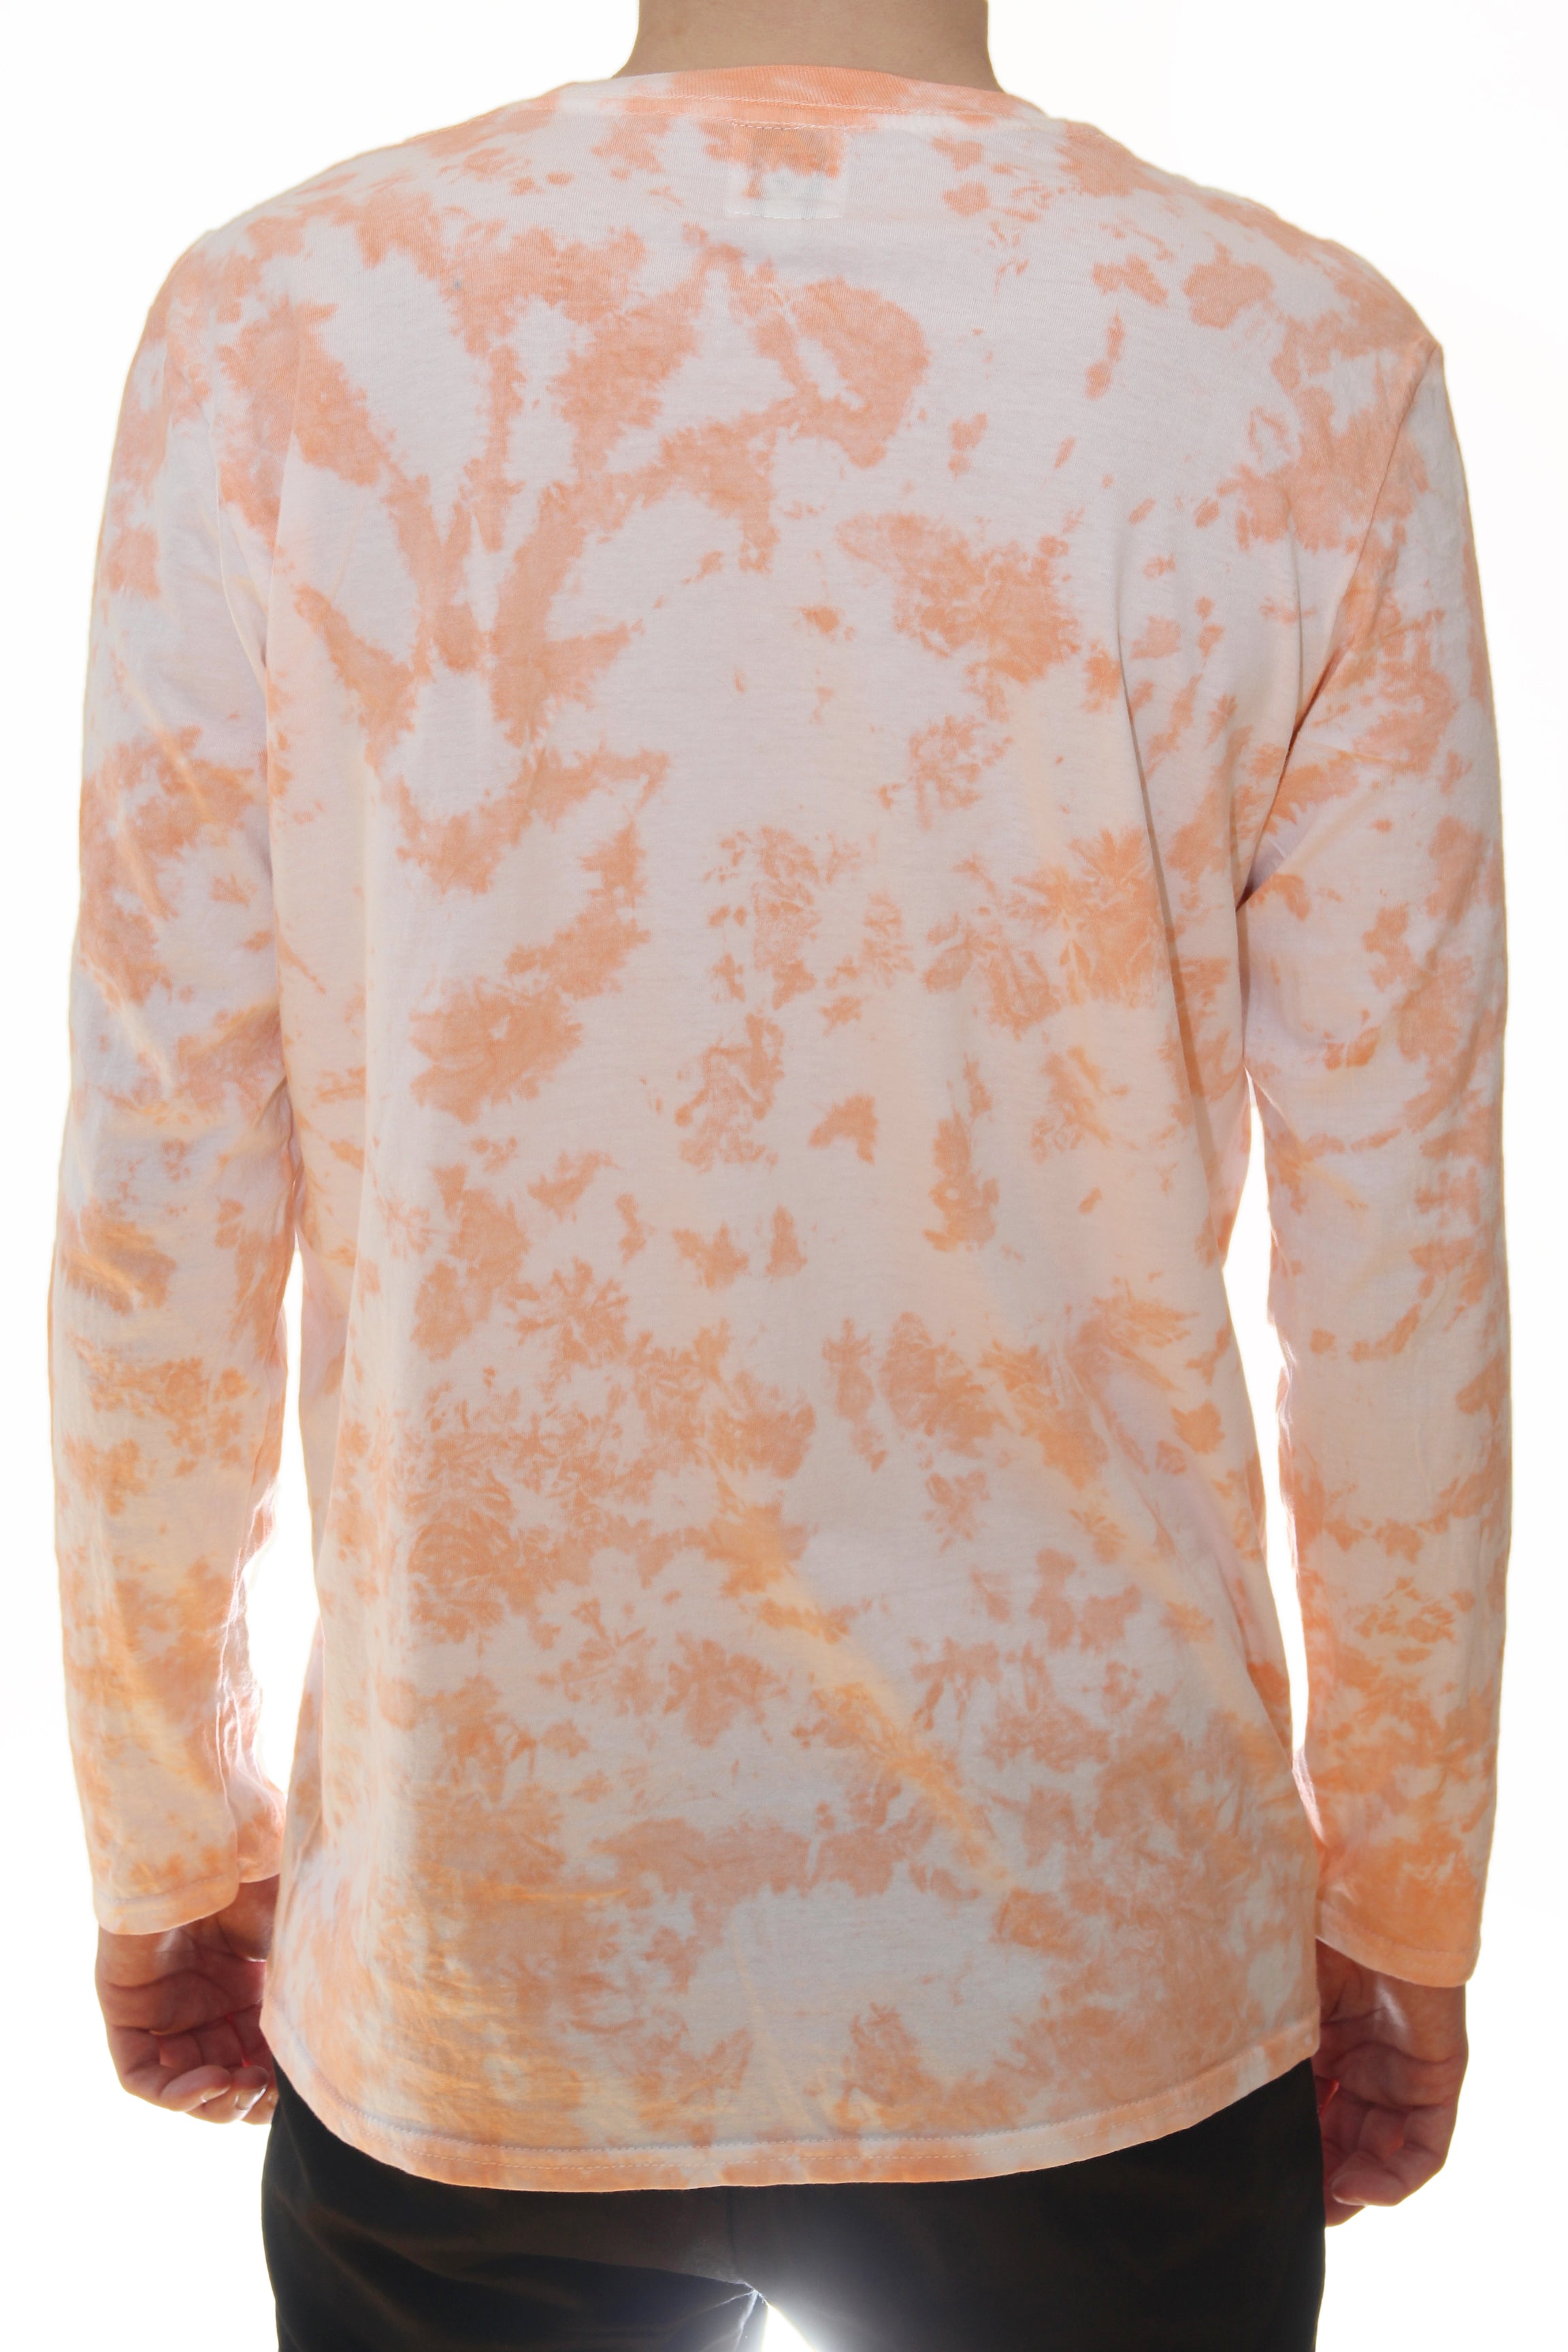 LONG SLEEVE T-SHIRT / CORAL / WHITE